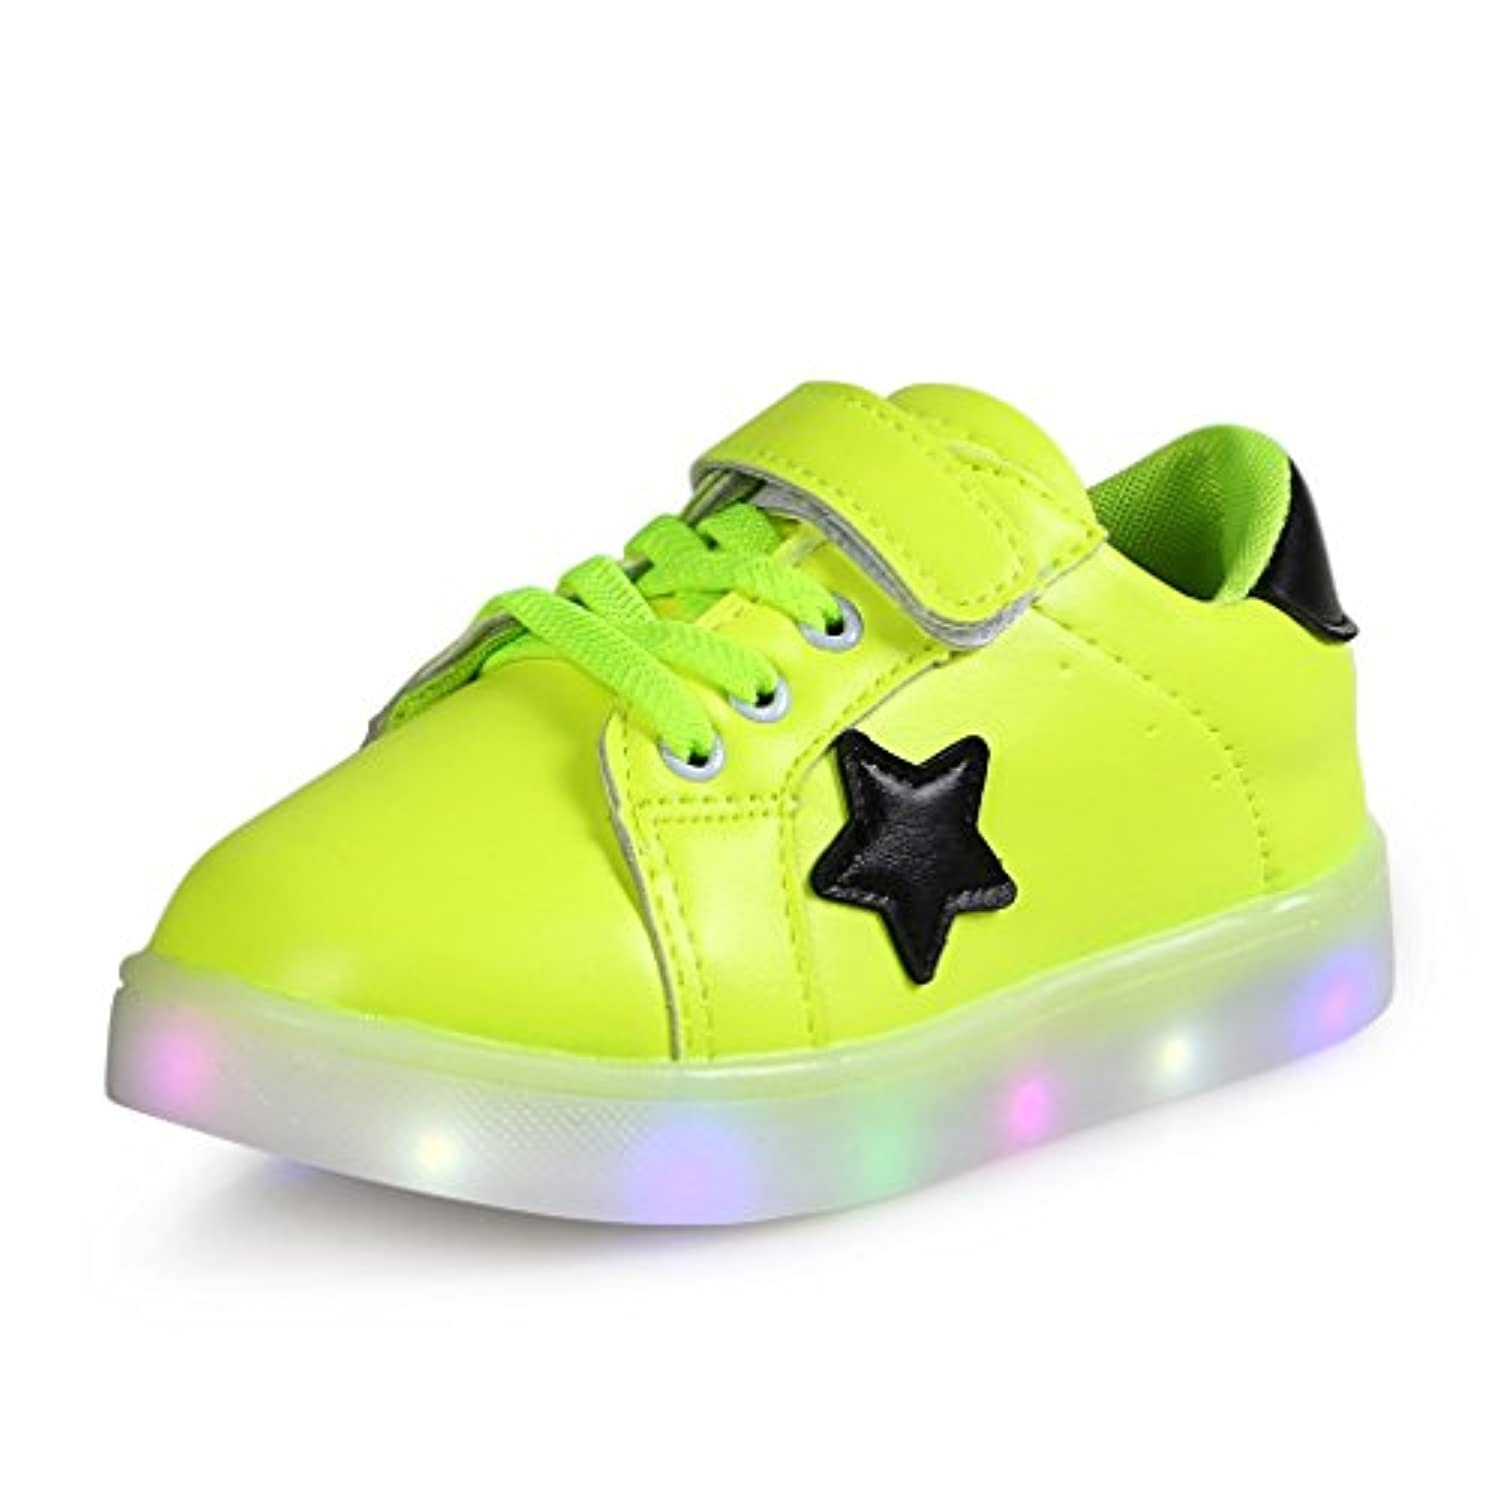 SAGUARO® Kids Girls Boys LED Luminous Shoes Light Up Shoes Sneakers Trainers Flashing Shoes Birthday Halloween Christmas Gift